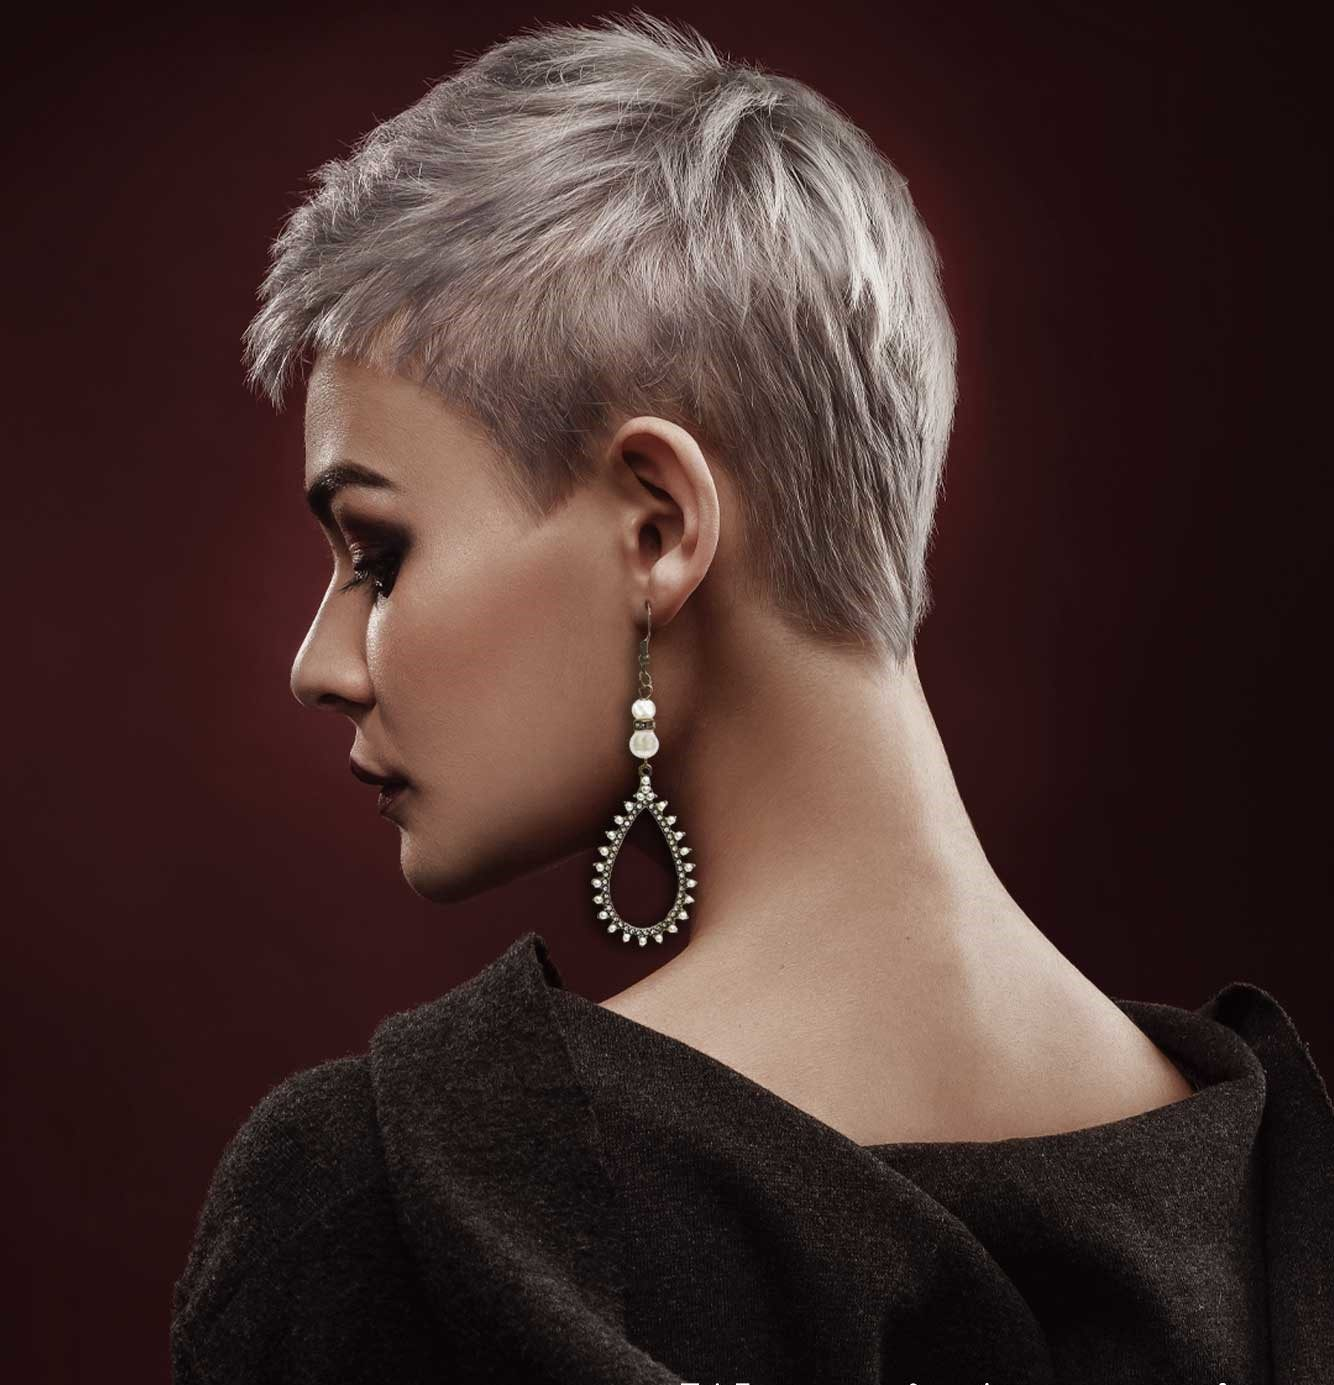 White Woman wearing classy earrings in a black top on burgundy background. Dlaen's Jewelry p